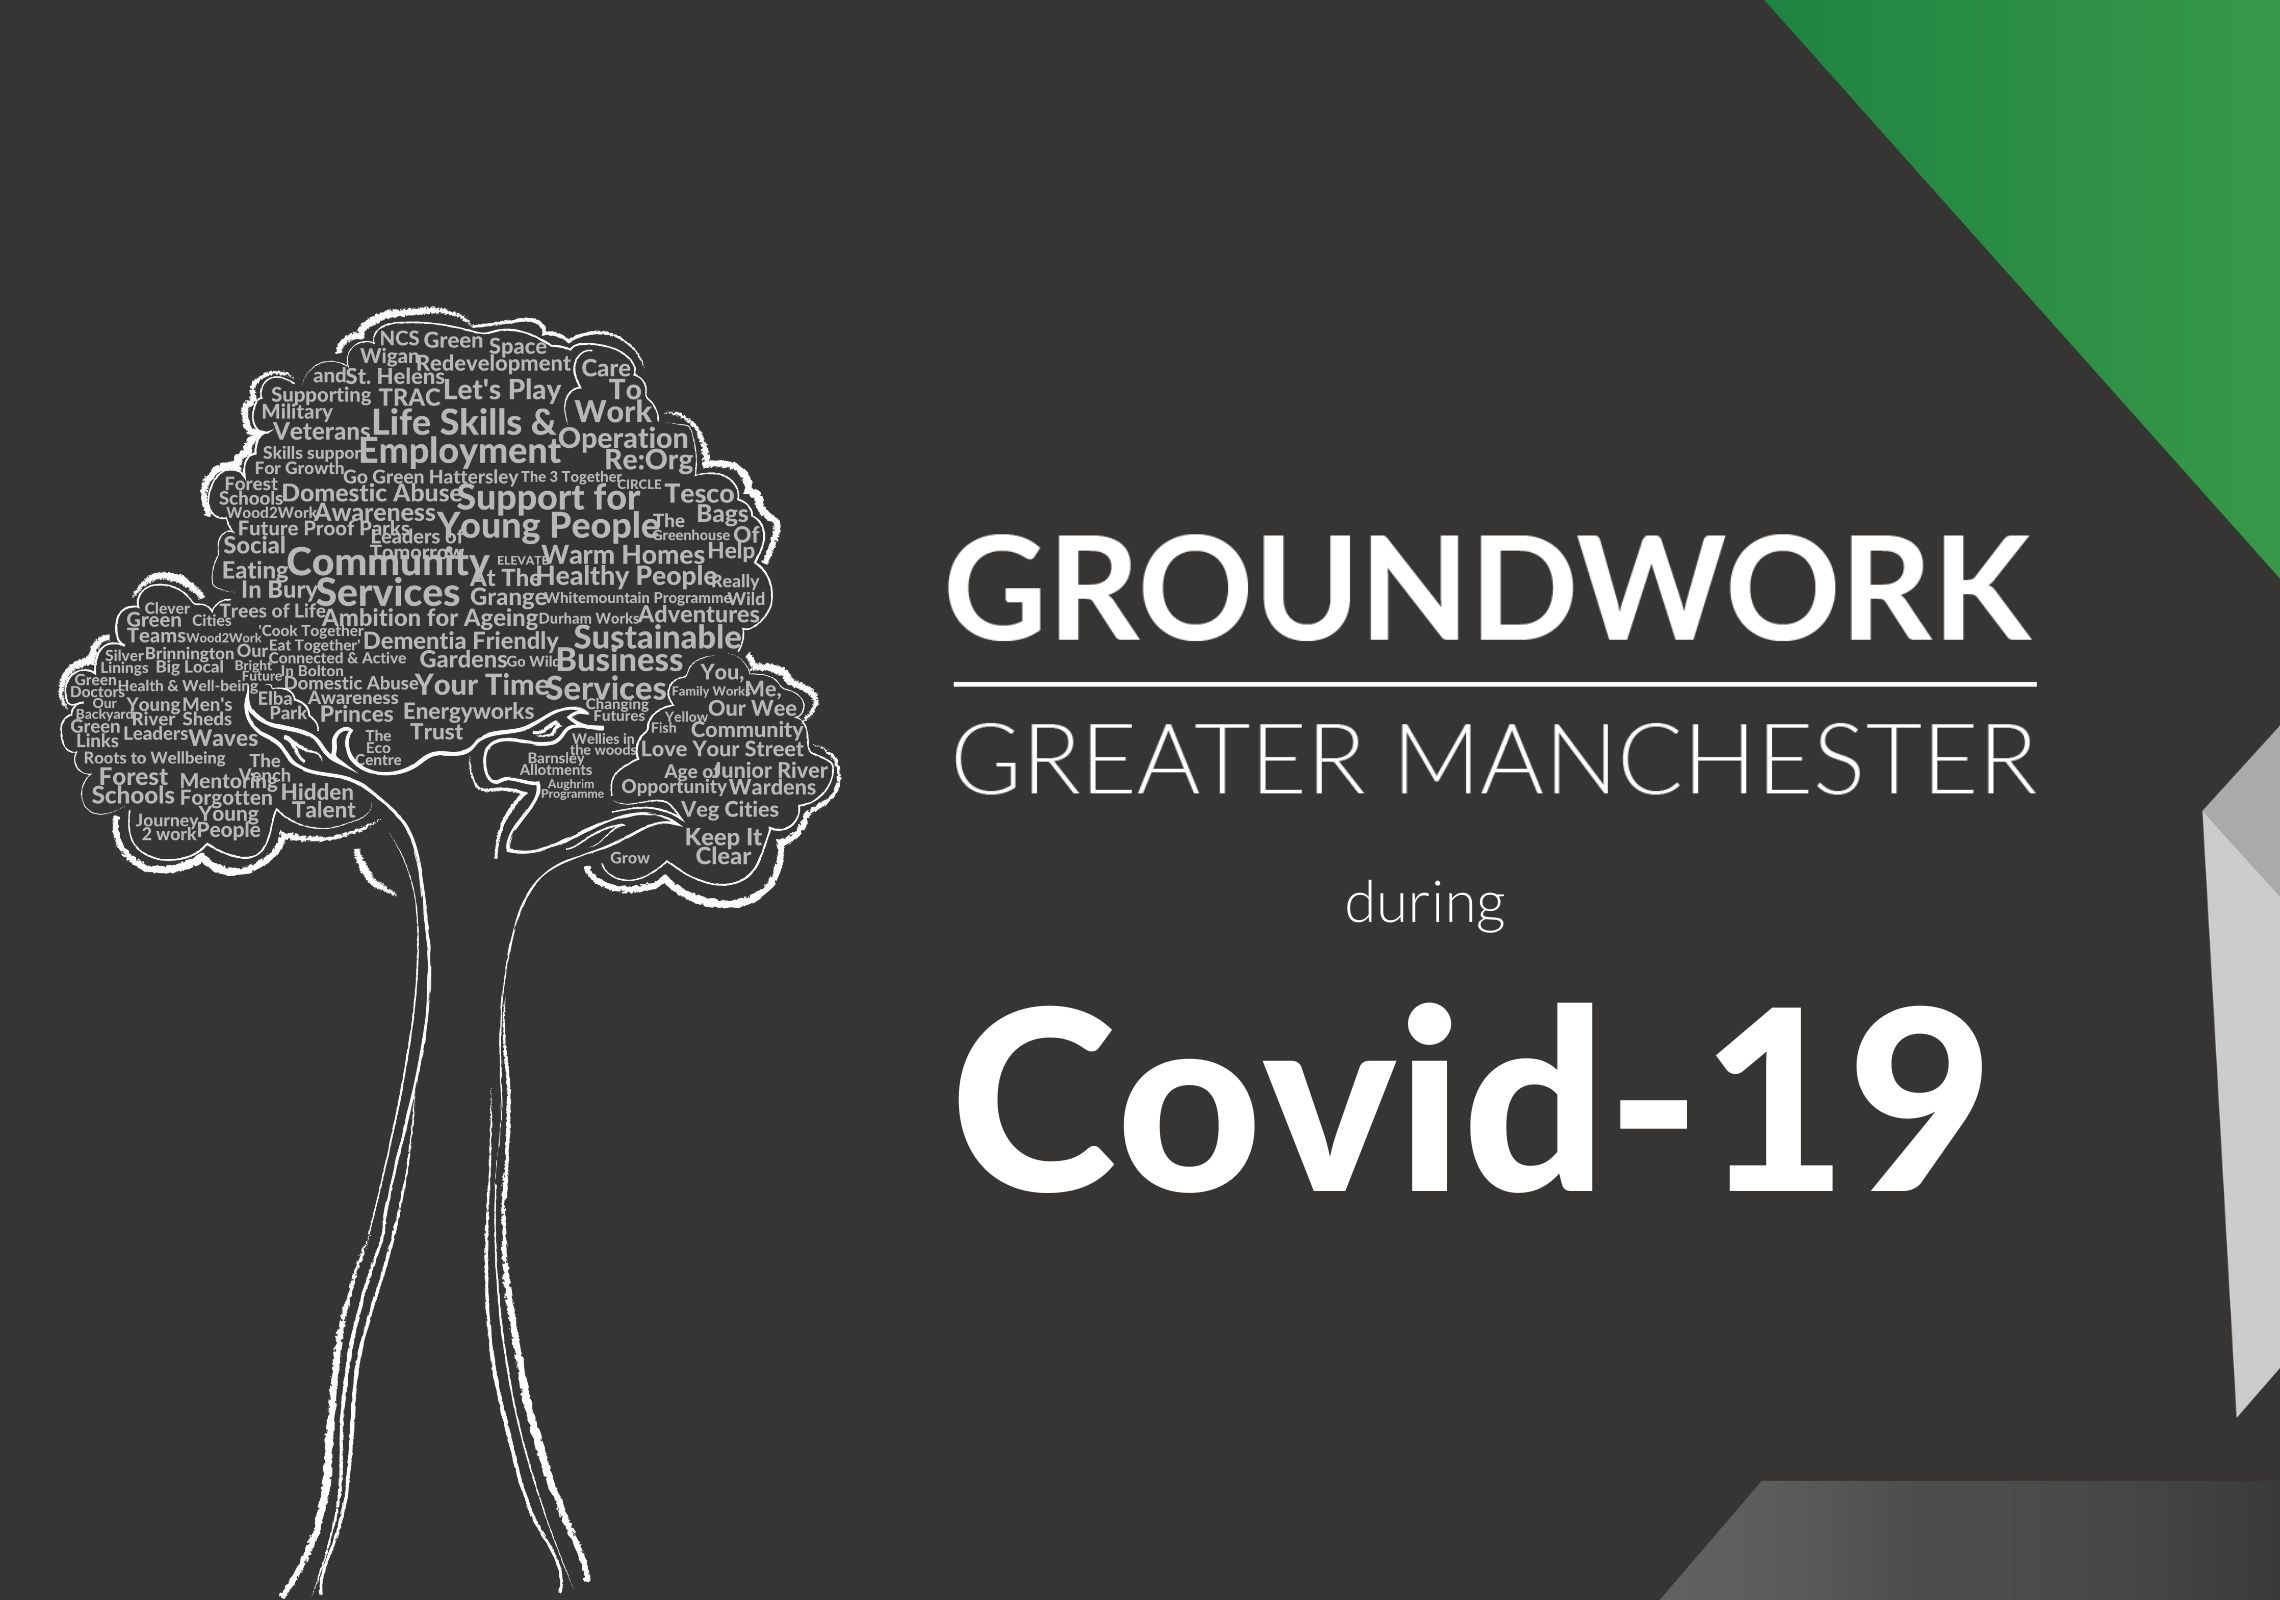 Covid19 – Impact on Groundwork Greater Manchester's local services & projects